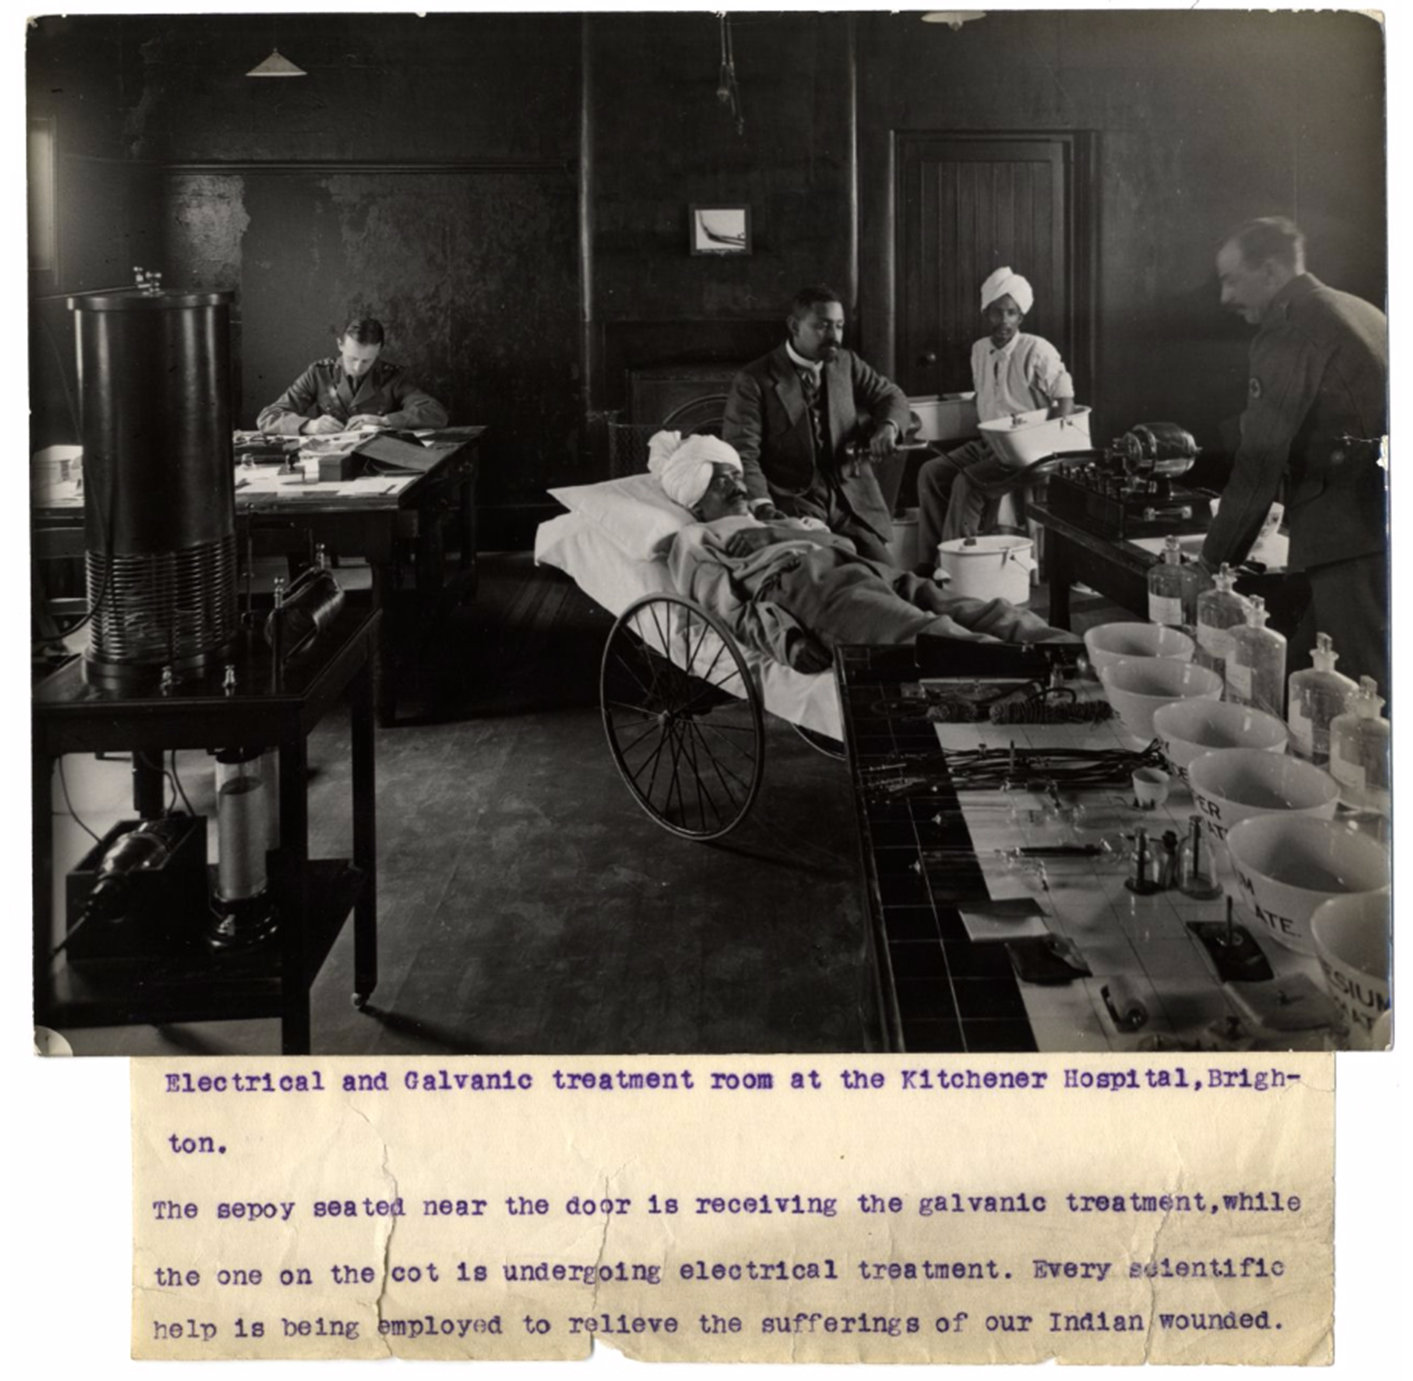 Indian soldiers are treated with electric shocks., H. D. Girdwood 1915 Brighton Electrical and Galvanic treatment room at the Kitchener Hospital, Brighton. Photographer: H. D. Girdwood., The British Library, Public Domain Mark